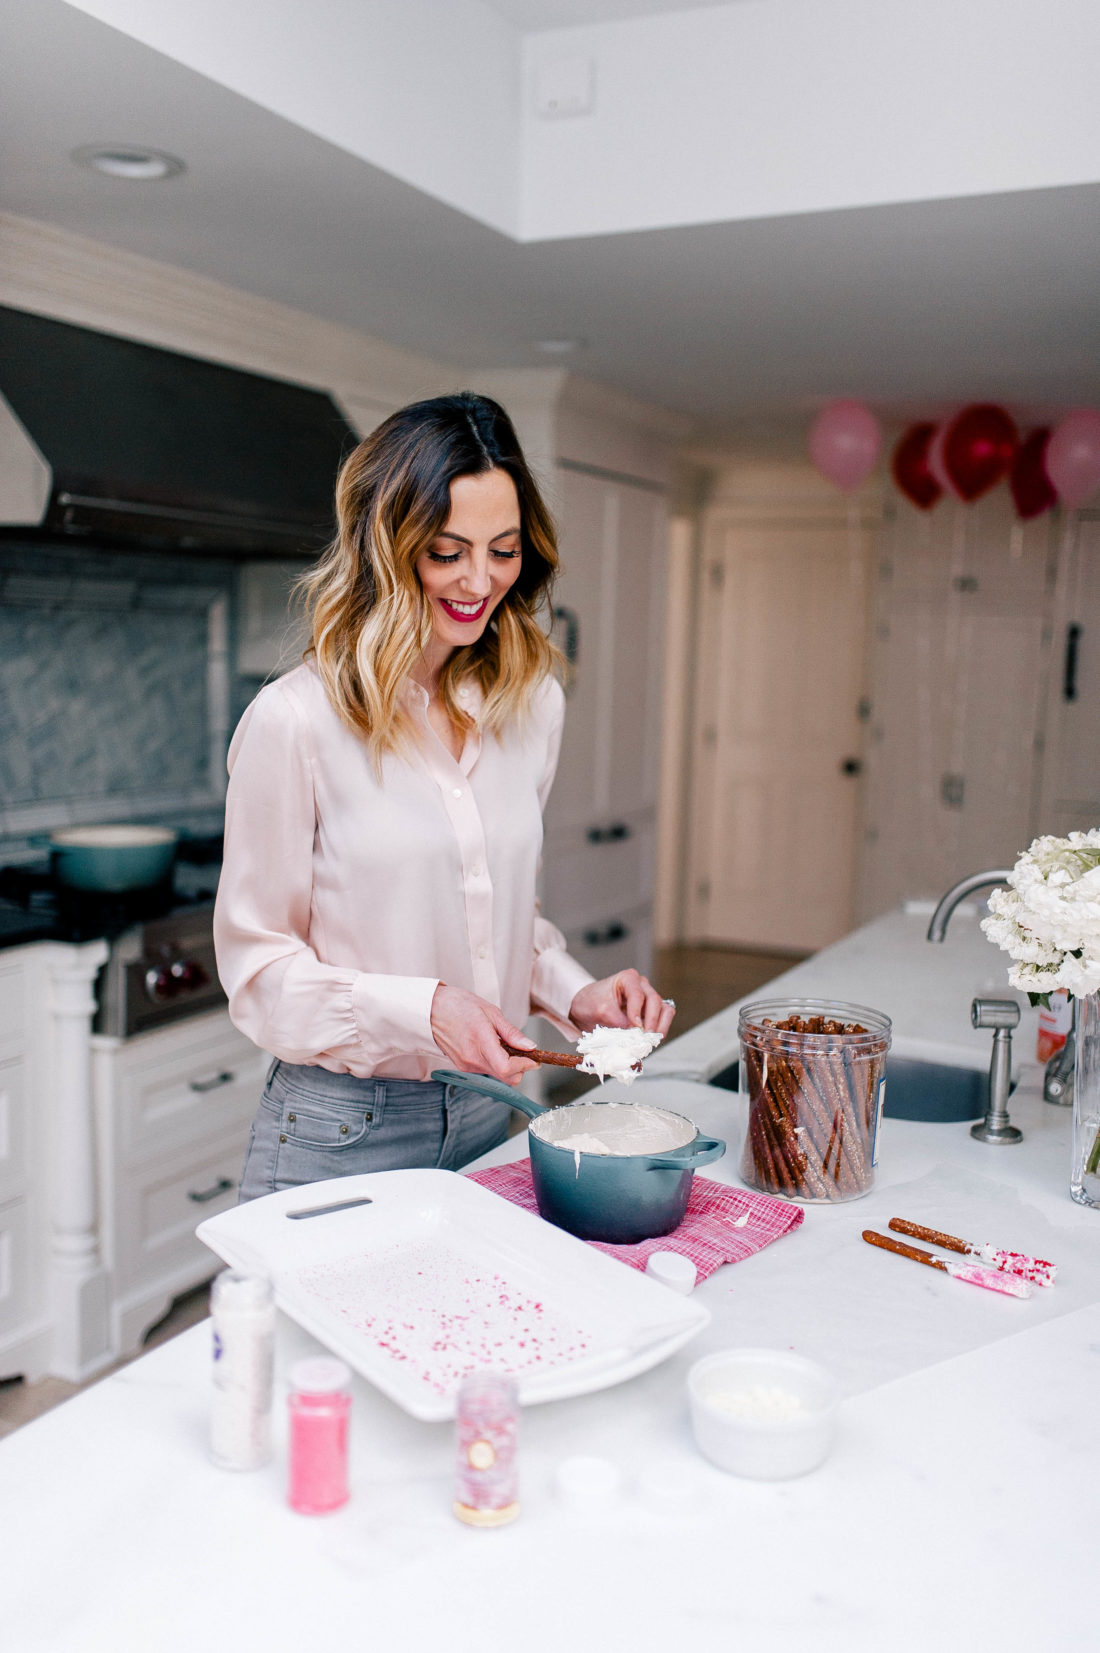 Eva Amurri Martino makes chocolate covered pretzels with valentine's day decorations